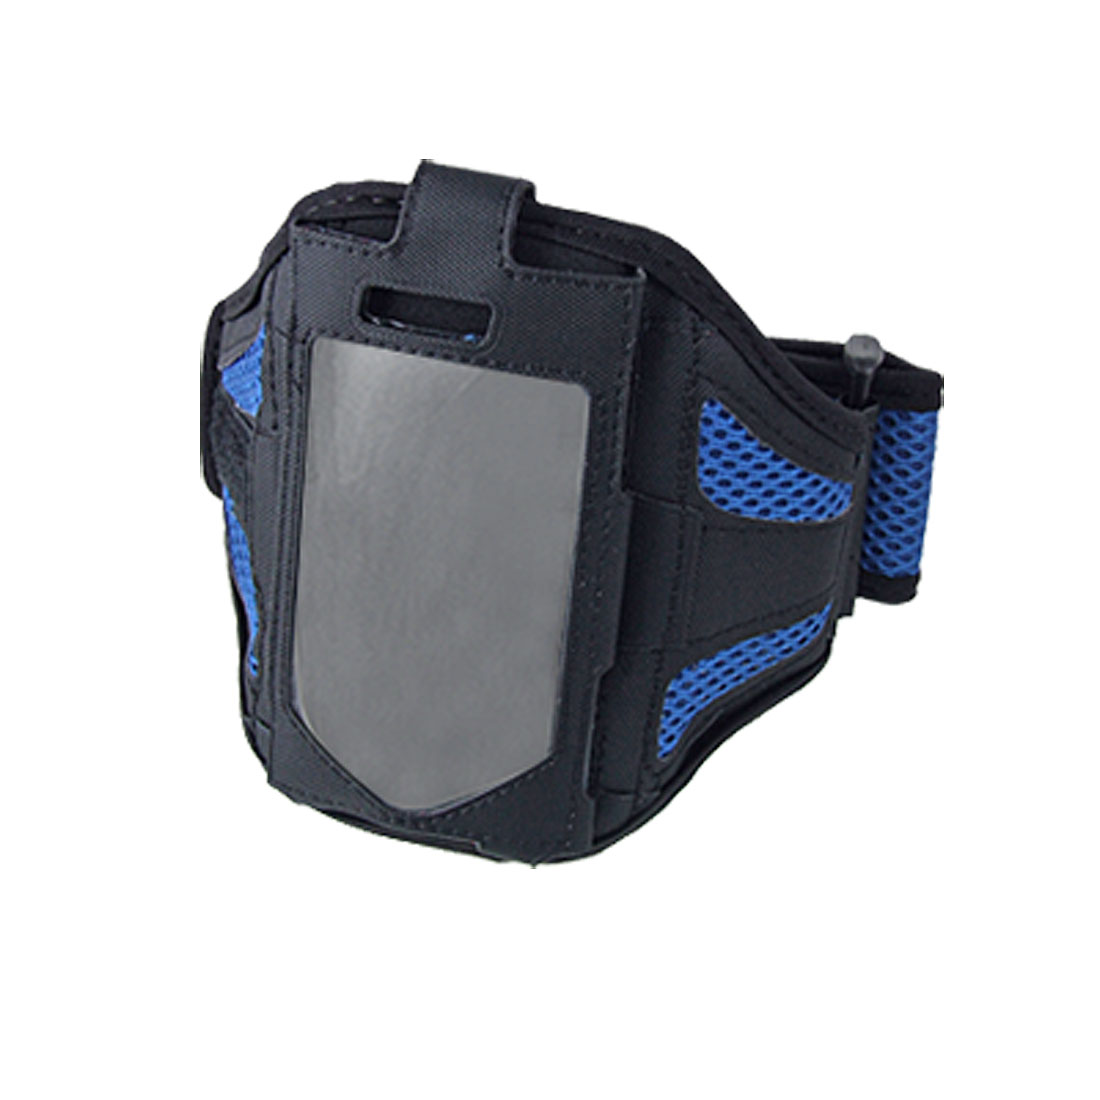 Sports Mesh Adjustable Blue Black Armband Case Holder for Cell Phone